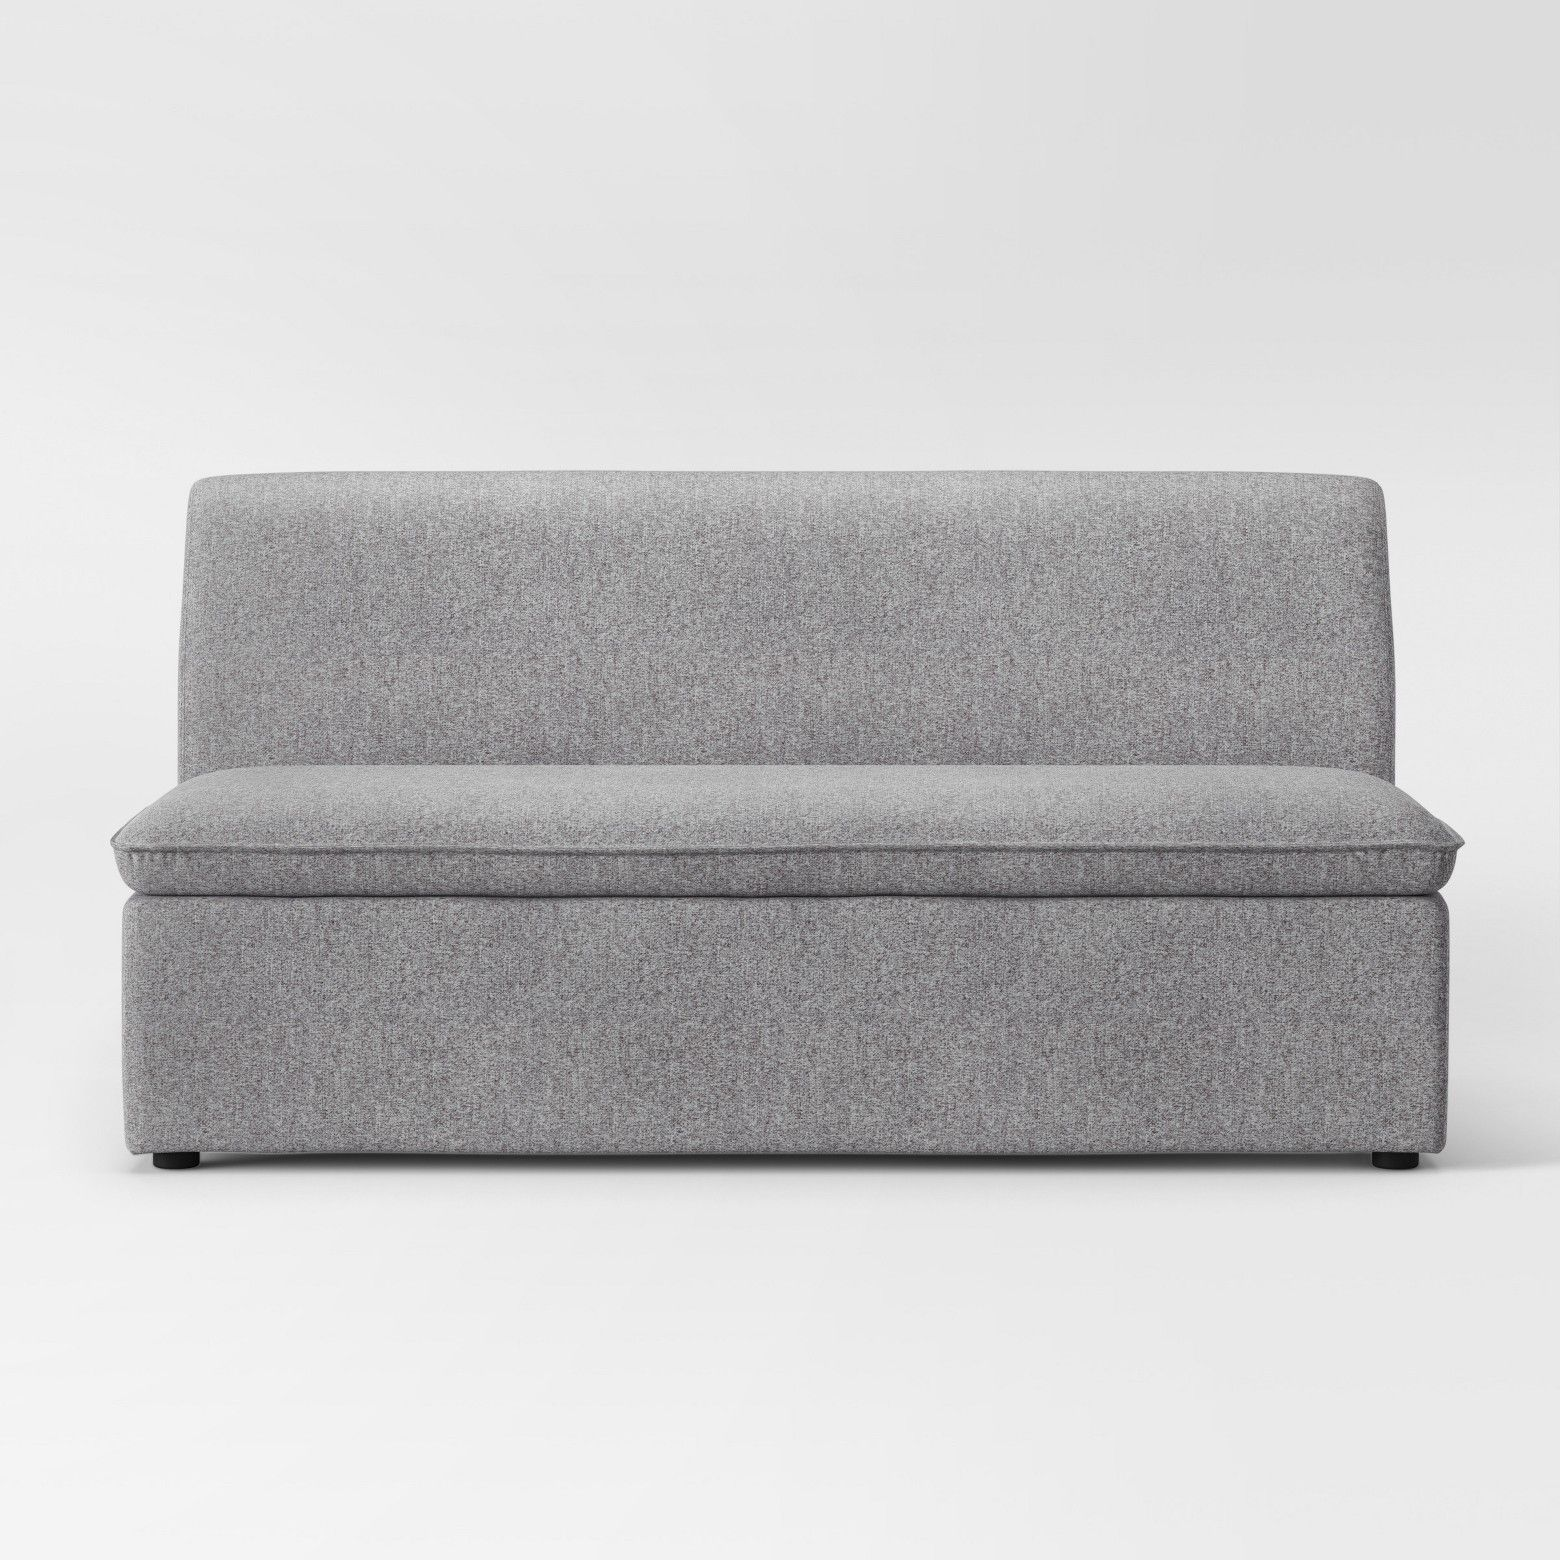 Beckstand Apartment Sofa Gray Project 62 Accent Pieces  ~ Lounge Ii Apartment Sofa